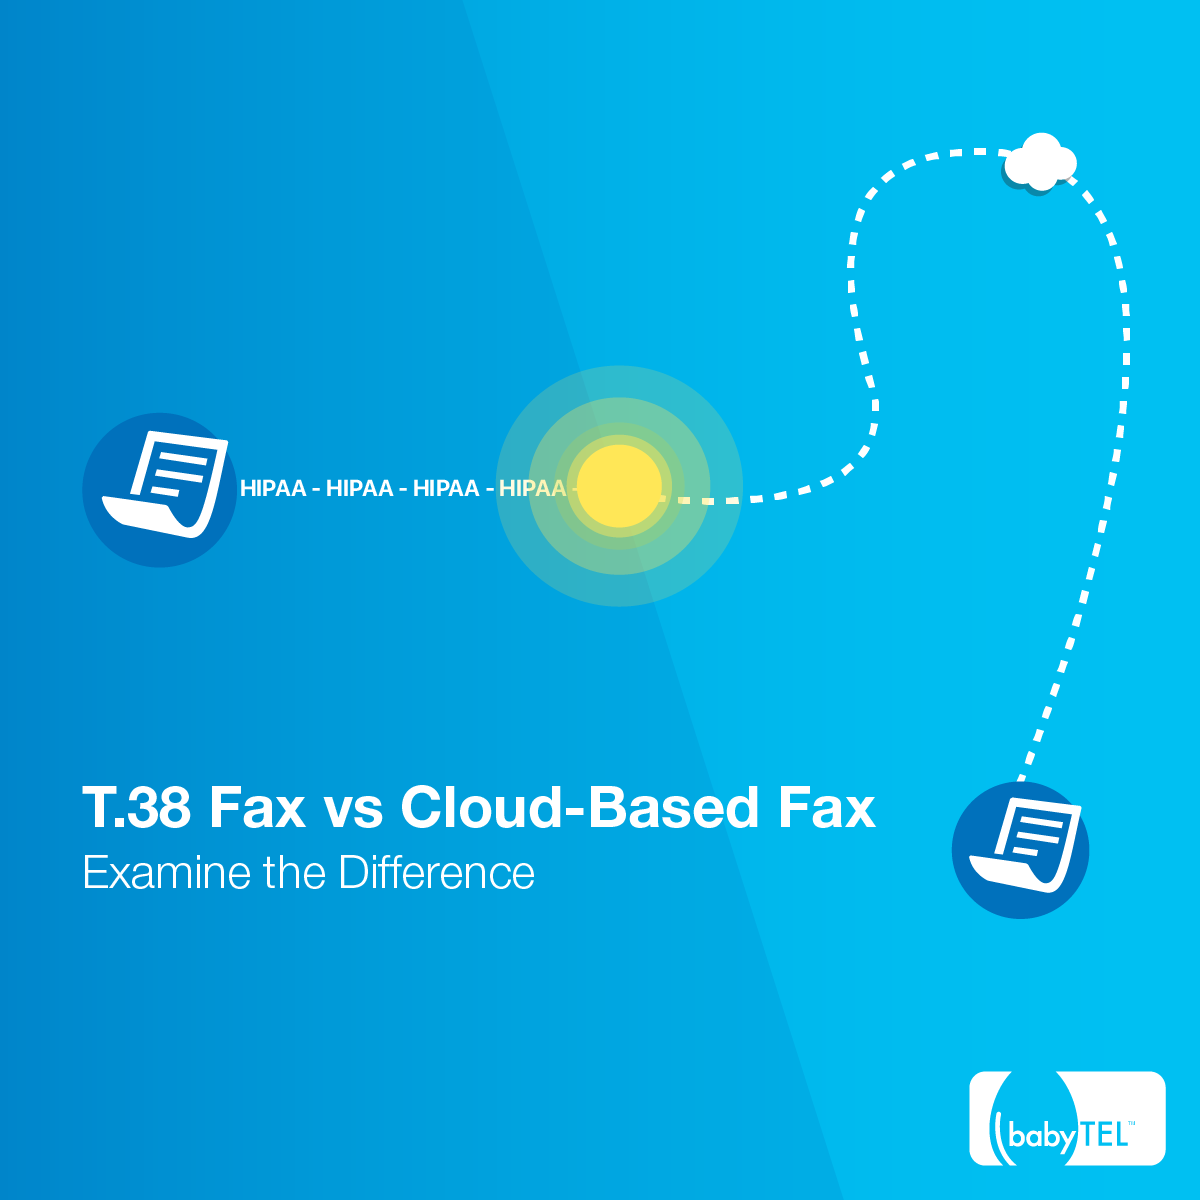 T.38 vs Cloud-Based Fax